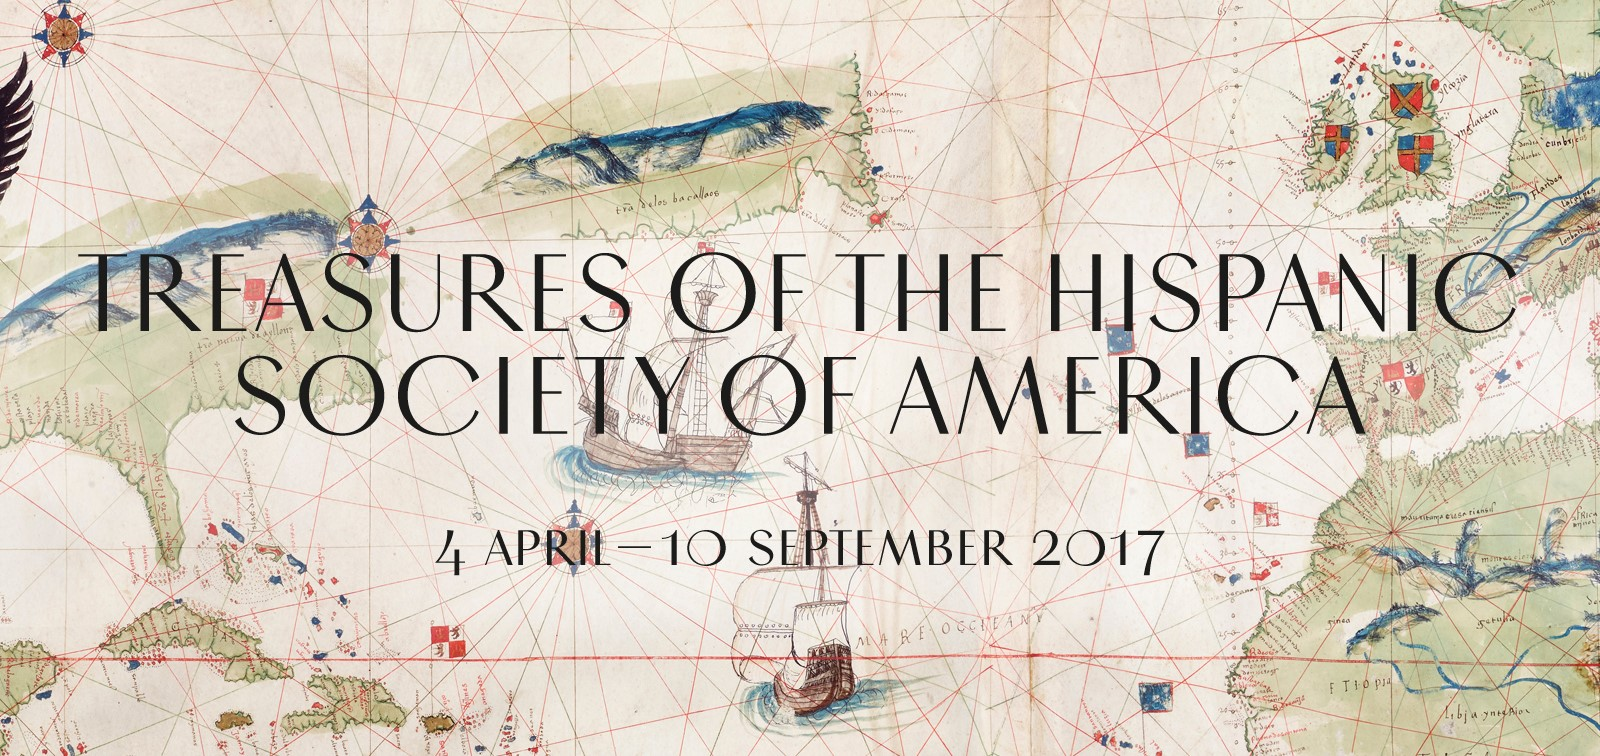 Exhibition. Treasures from the Hispanic Society of America. Visions of the Hispanic World